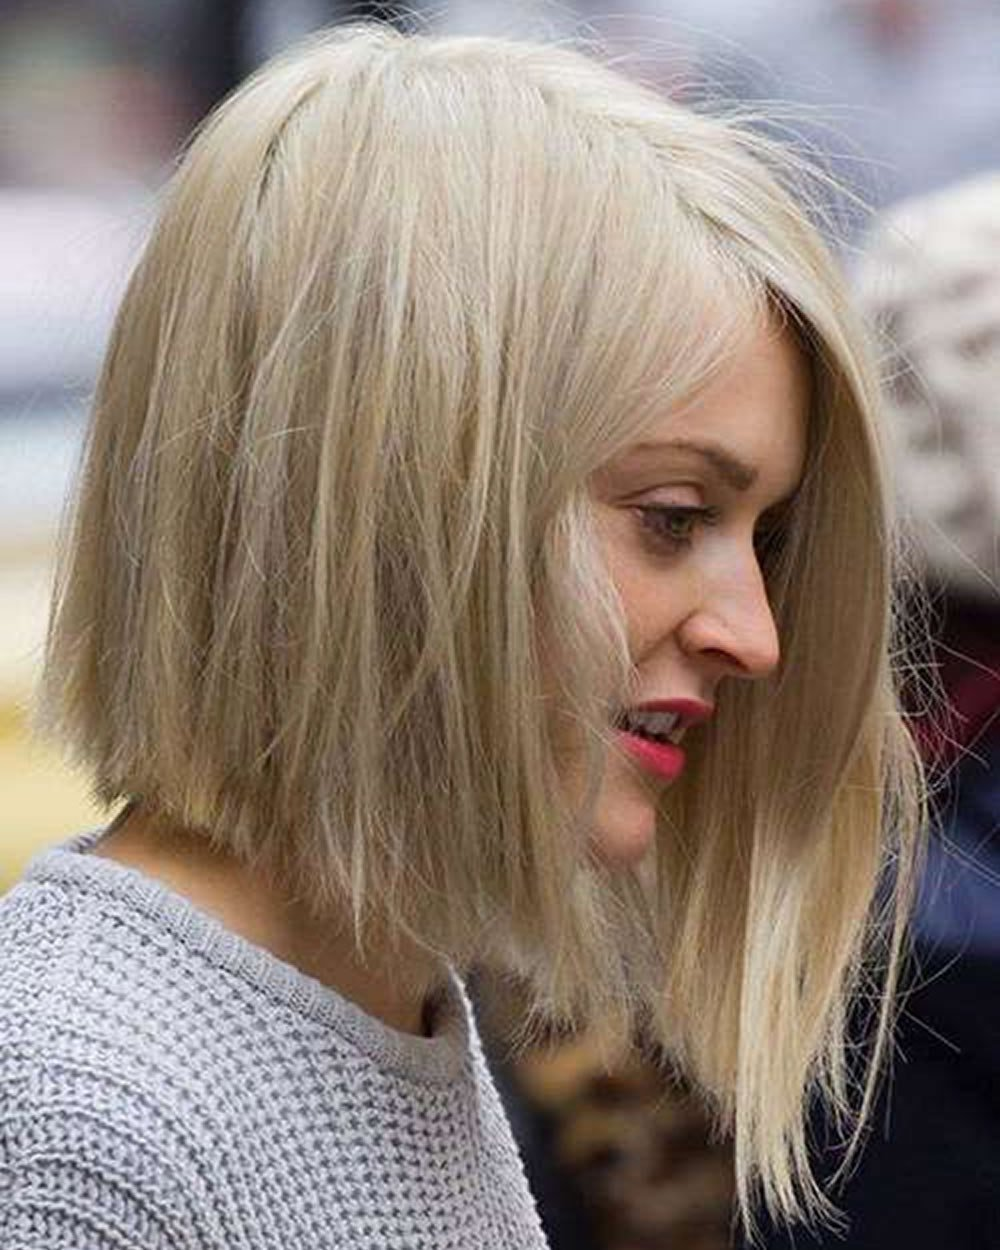 The Best Asymmetrical Long Bob Hairstyles 2019 Are At The Forefront Of Trendy Model Pictures